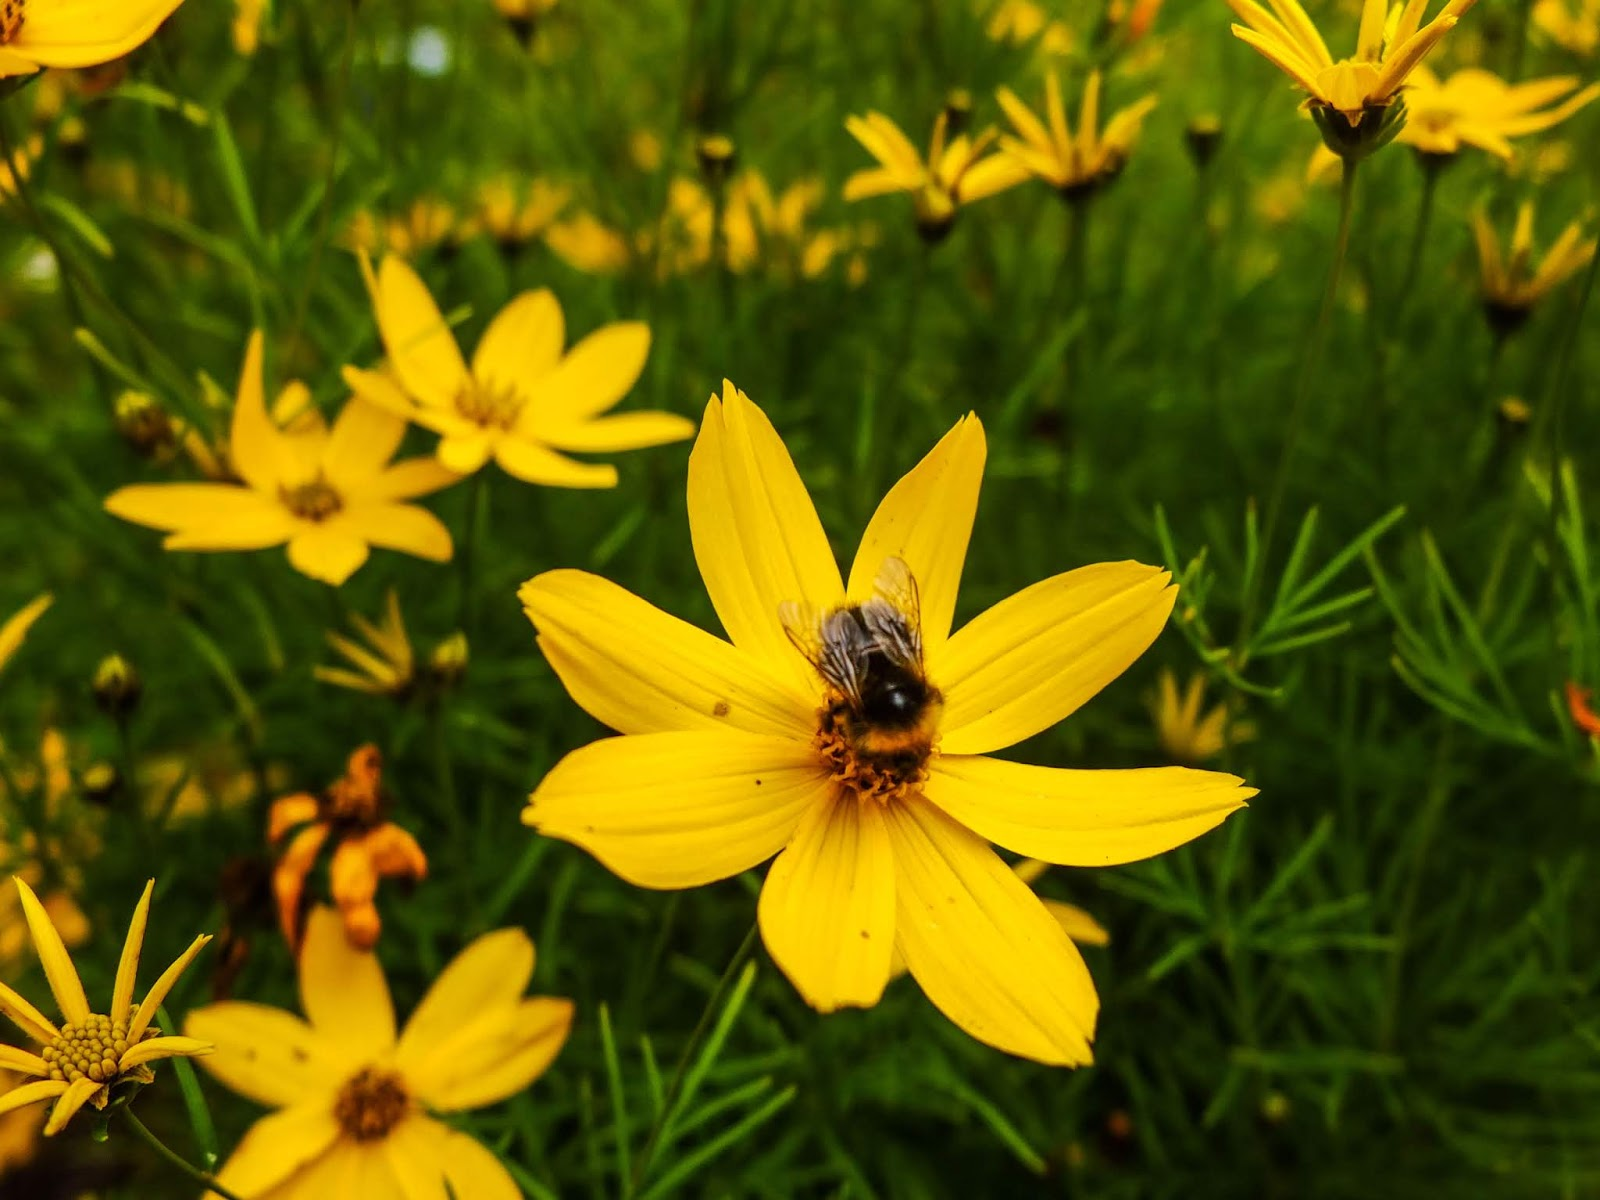 A bee sitting in the centre of a Coreopsis flower.